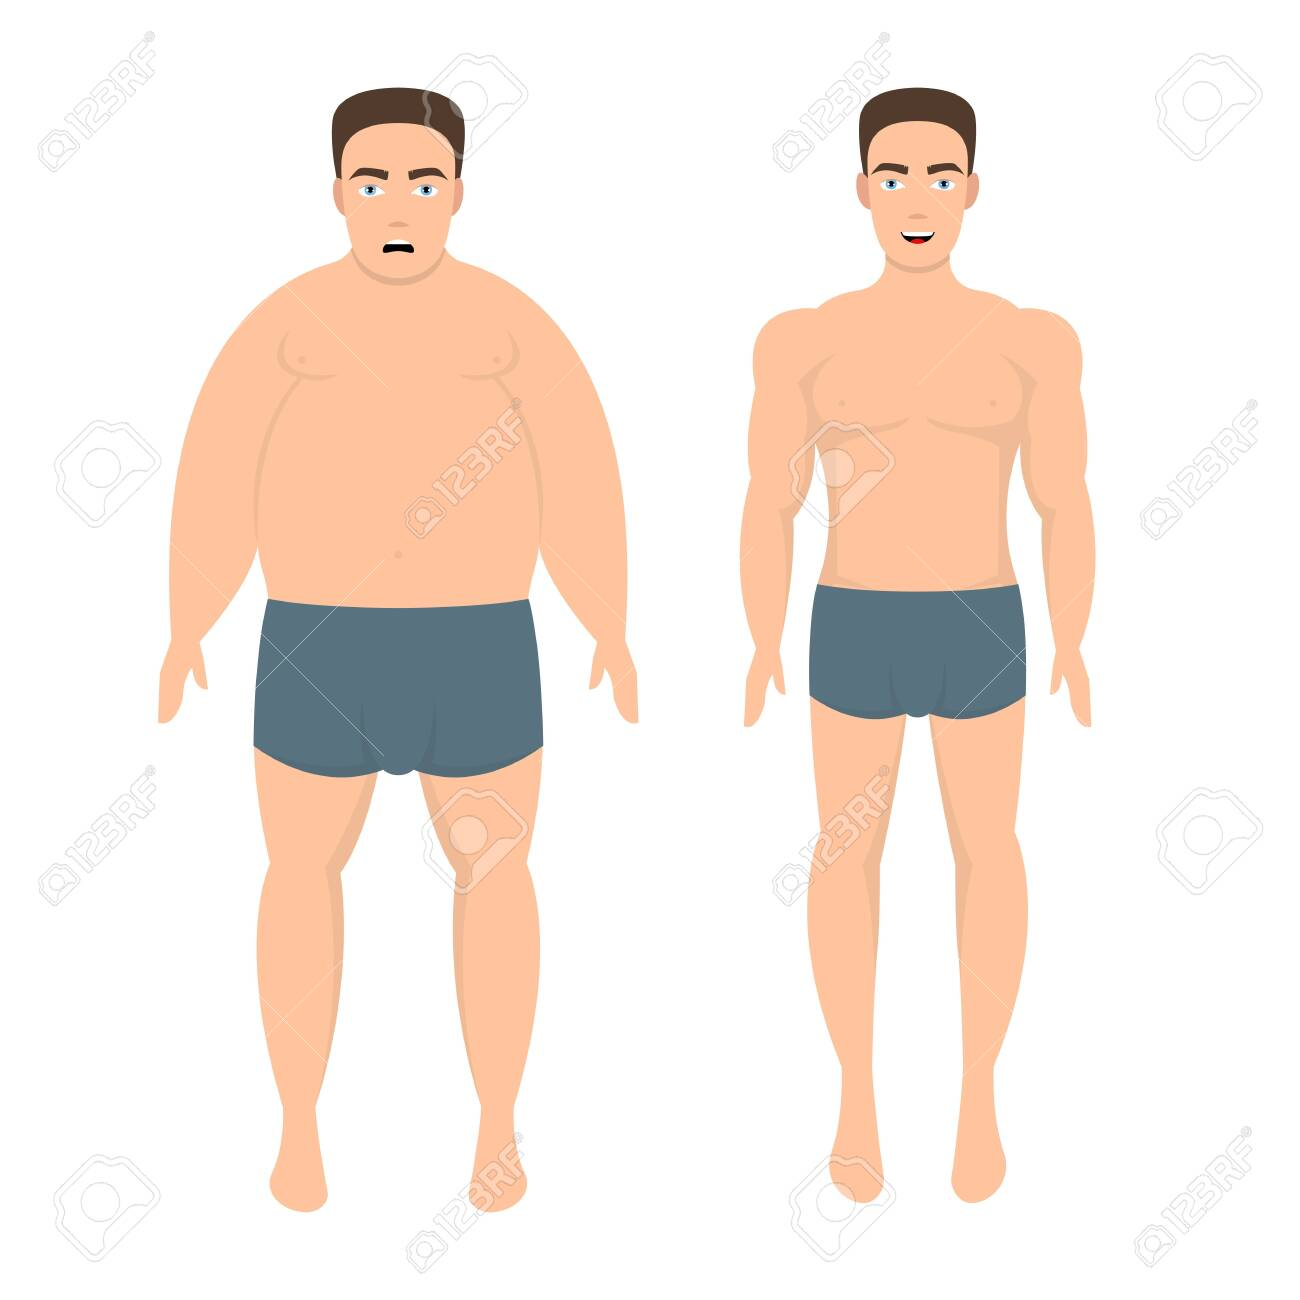 Weight loss man vector design illustration isolated on white background - 156241177